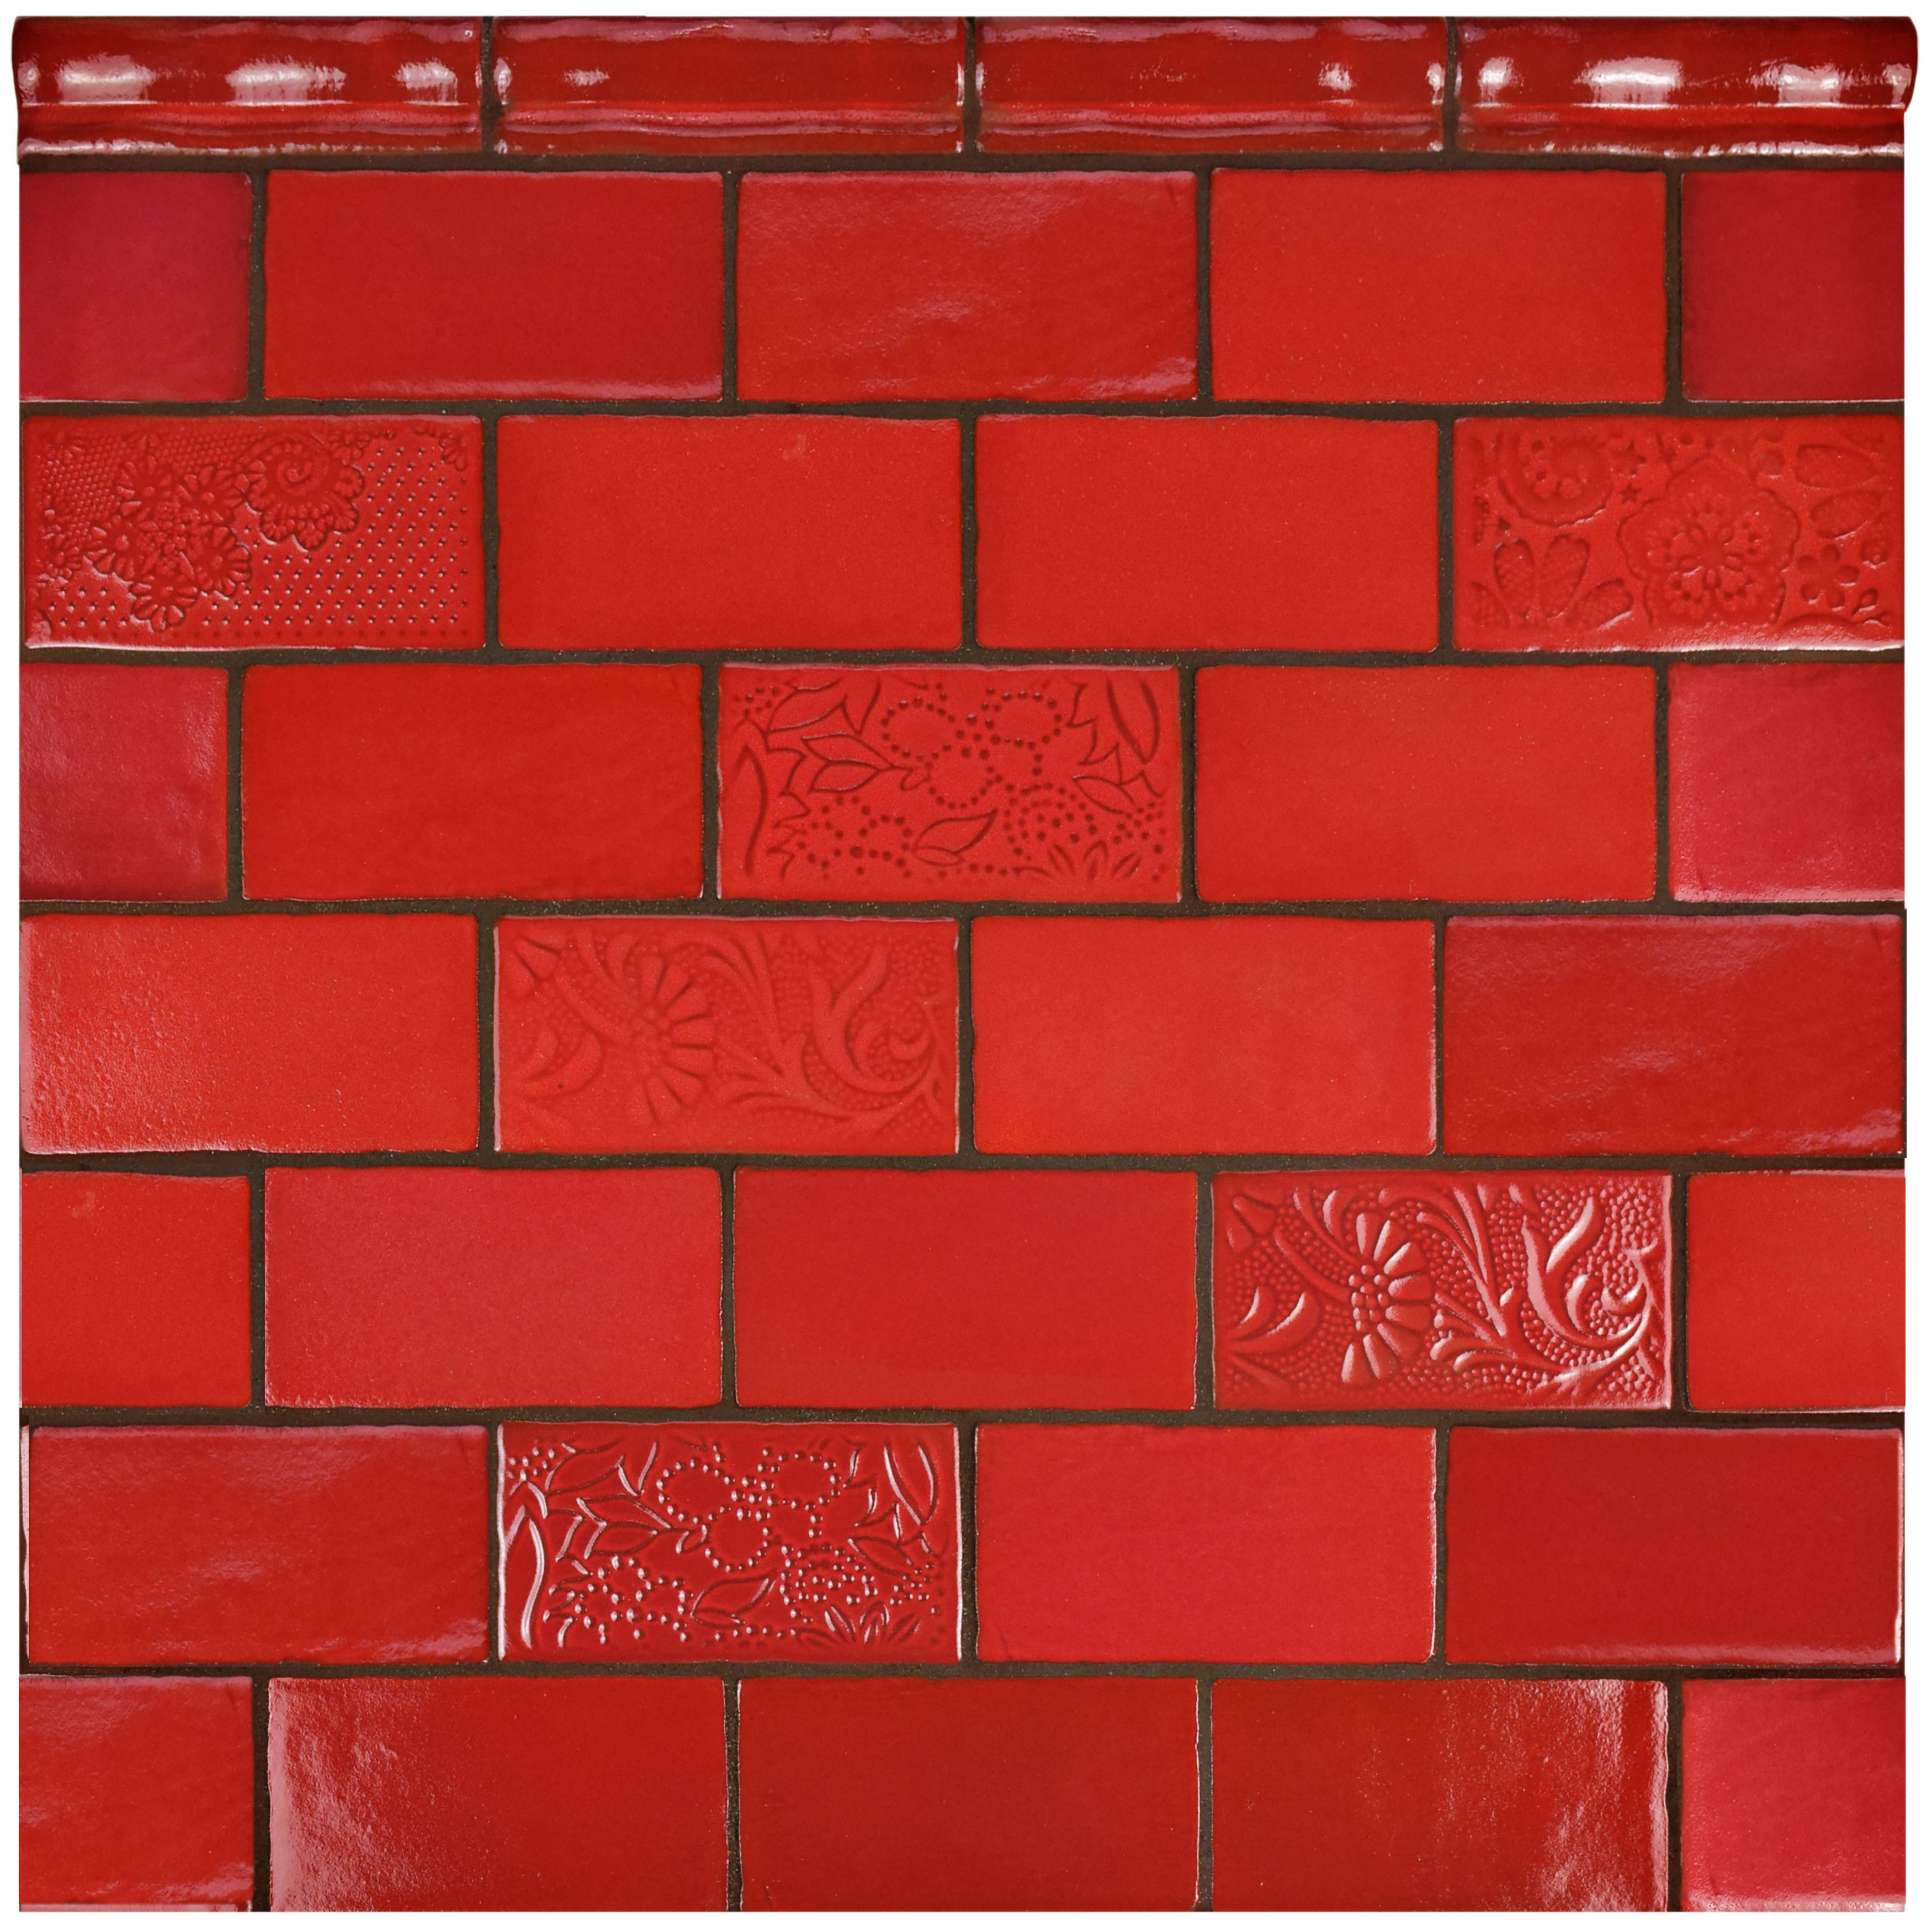 Antiqua 3 x 6 ceramic subway tile in feelings red moon red antiqua 3 x 6 ceramic subway tile in feelings red moon dailygadgetfo Choice Image